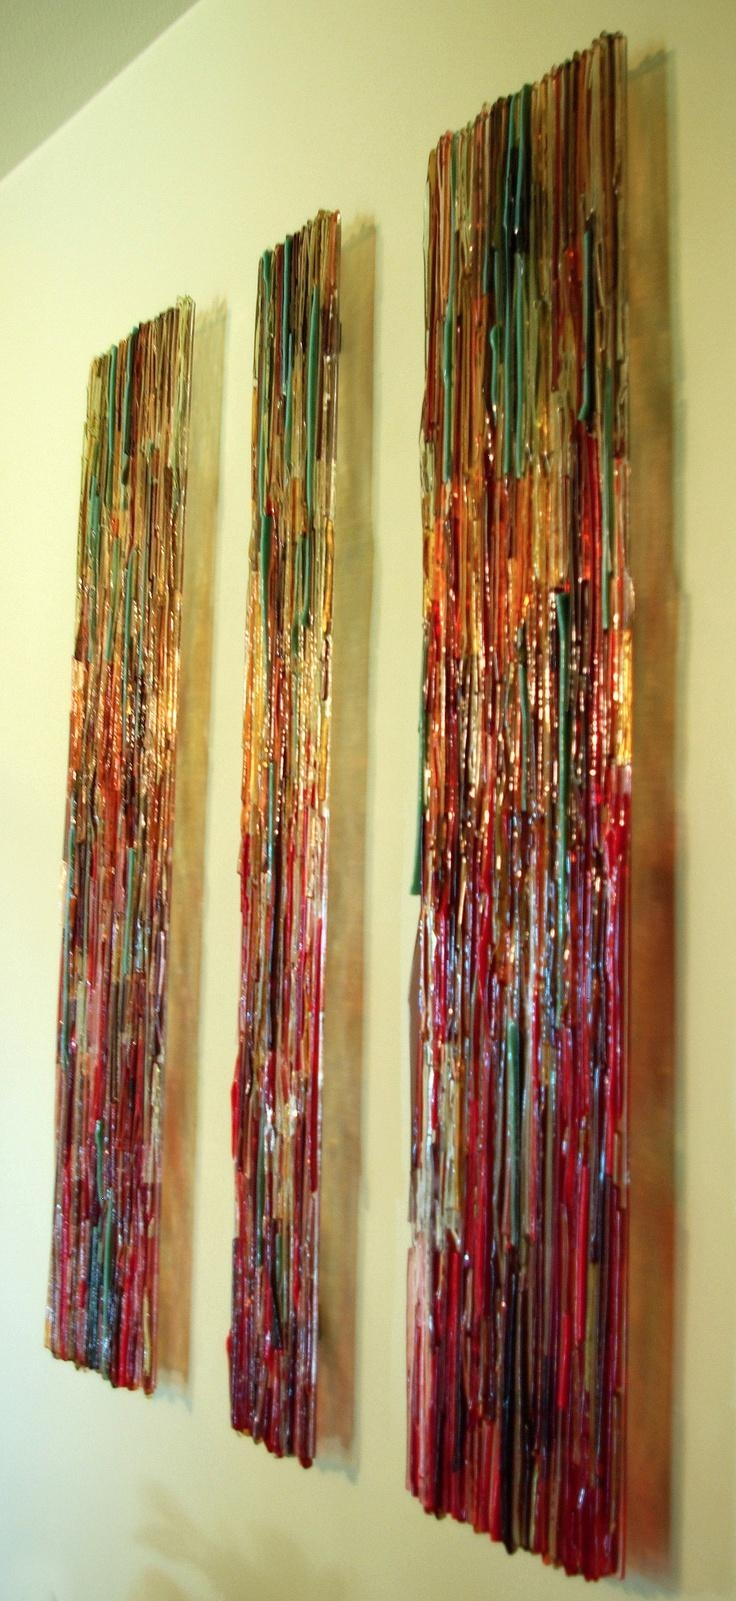 25+ Best Glass Wall Art Ideas On Pinterest | Glass Art, Fused intended for Fused Glass Wall Art Hanging